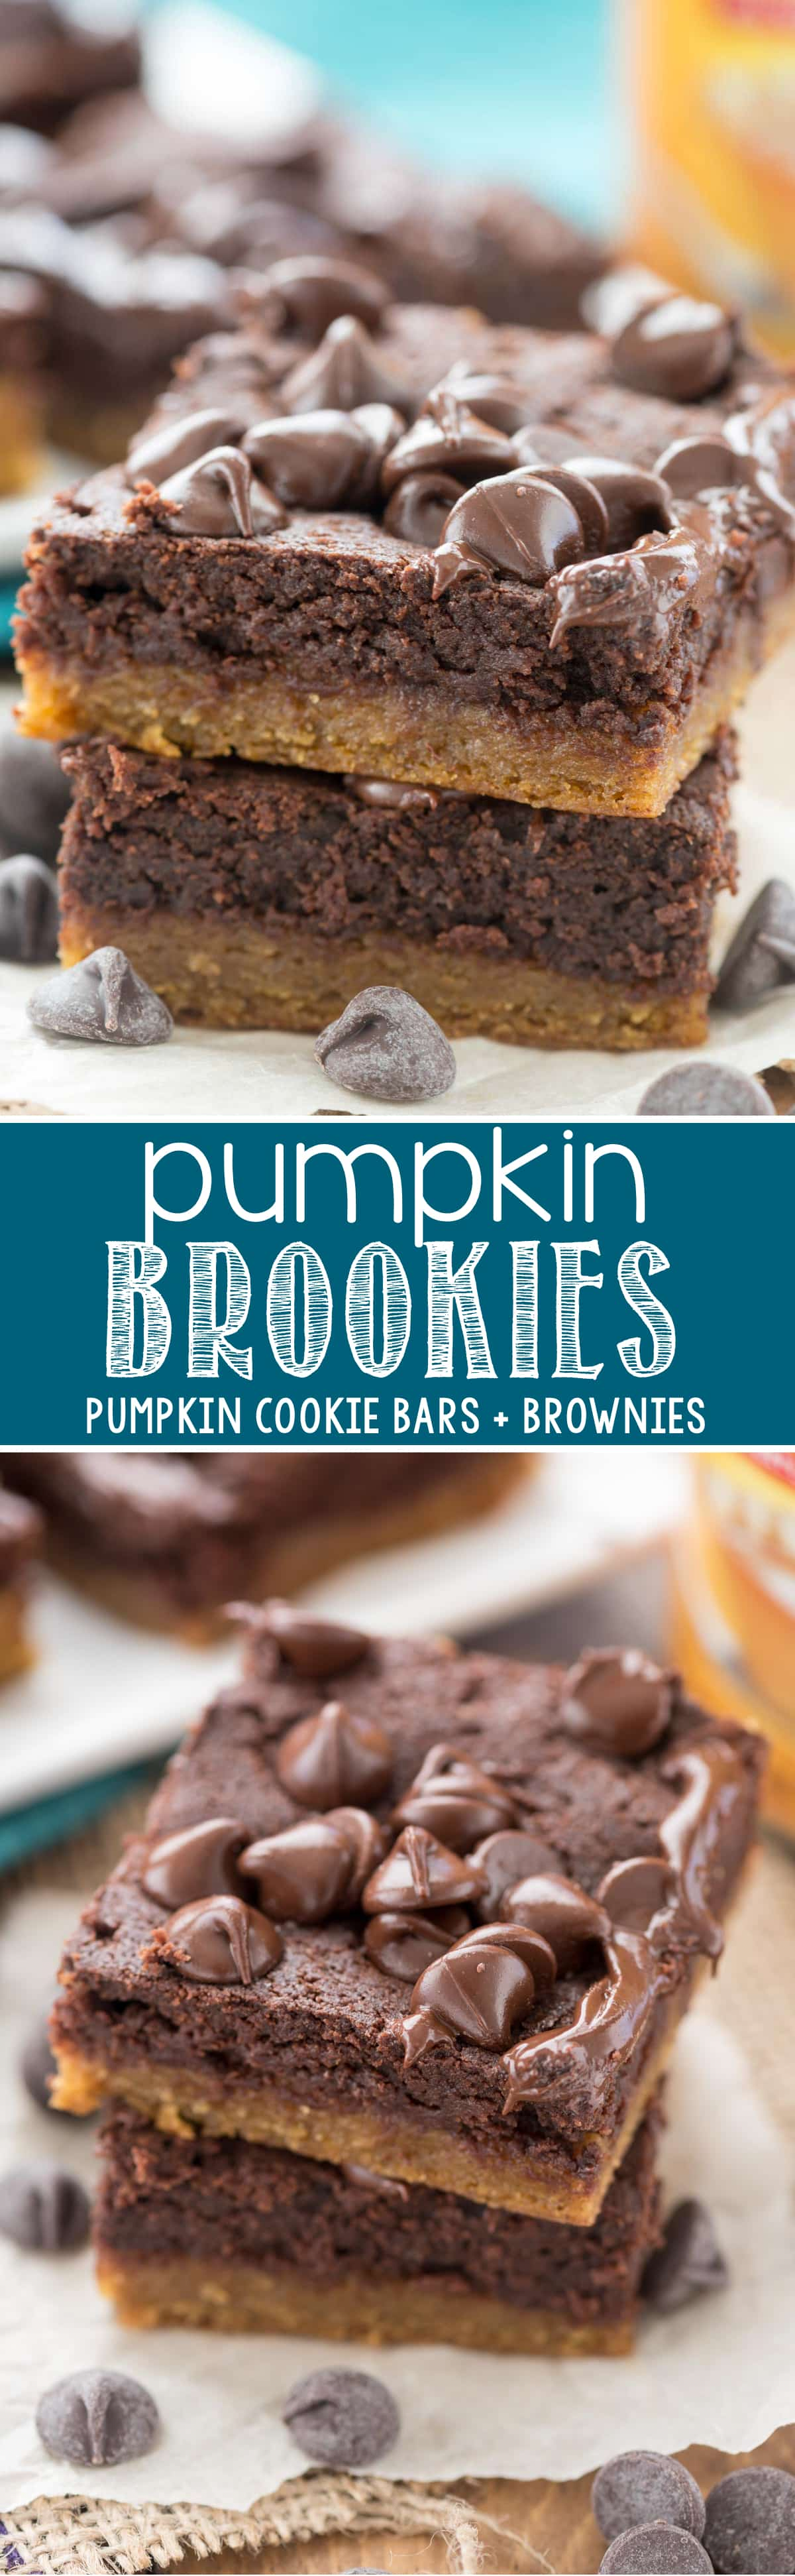 Pumpkin Brookies - EASY Pumpkin Cookie Bars with Brownies on top! We loved this super fudgy fall recipe!